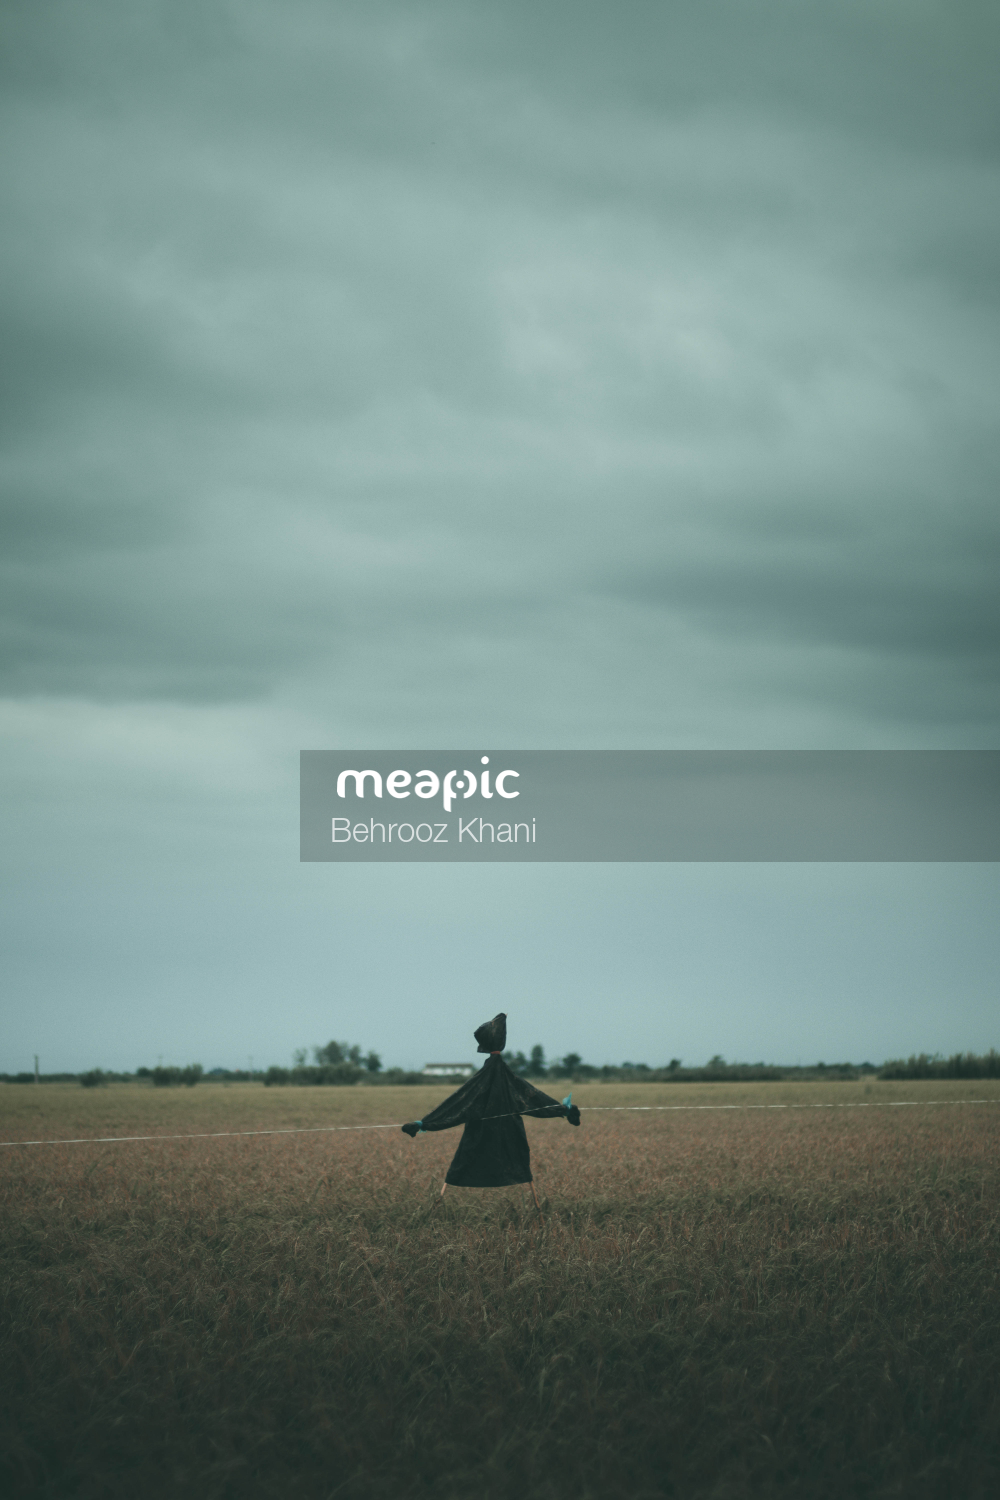 Person Standing On Top Of A Grass Covered Field Stock Photo · Meapic